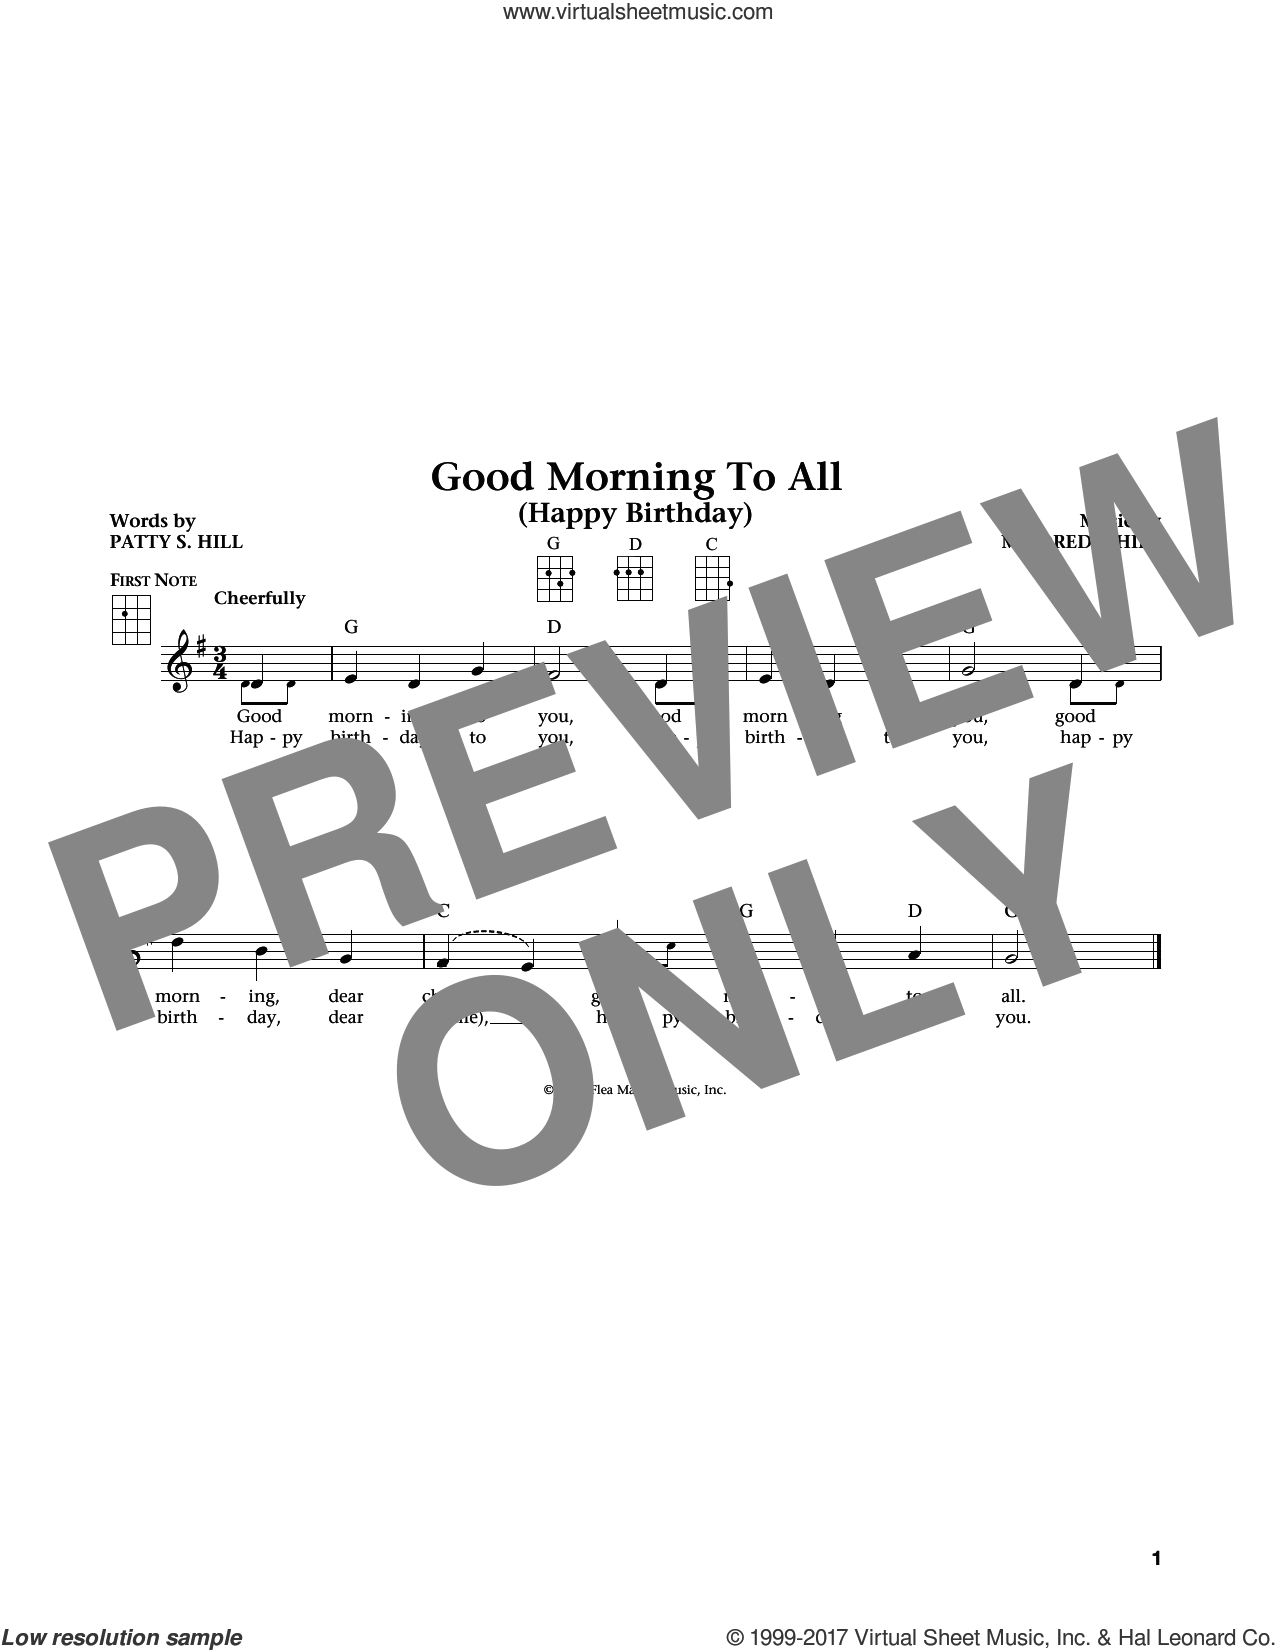 Good Morning To All sheet music for ukulele by Mildred J. Hill, Jim Beloff, Liz Beloff and Patty Smith Hill, intermediate